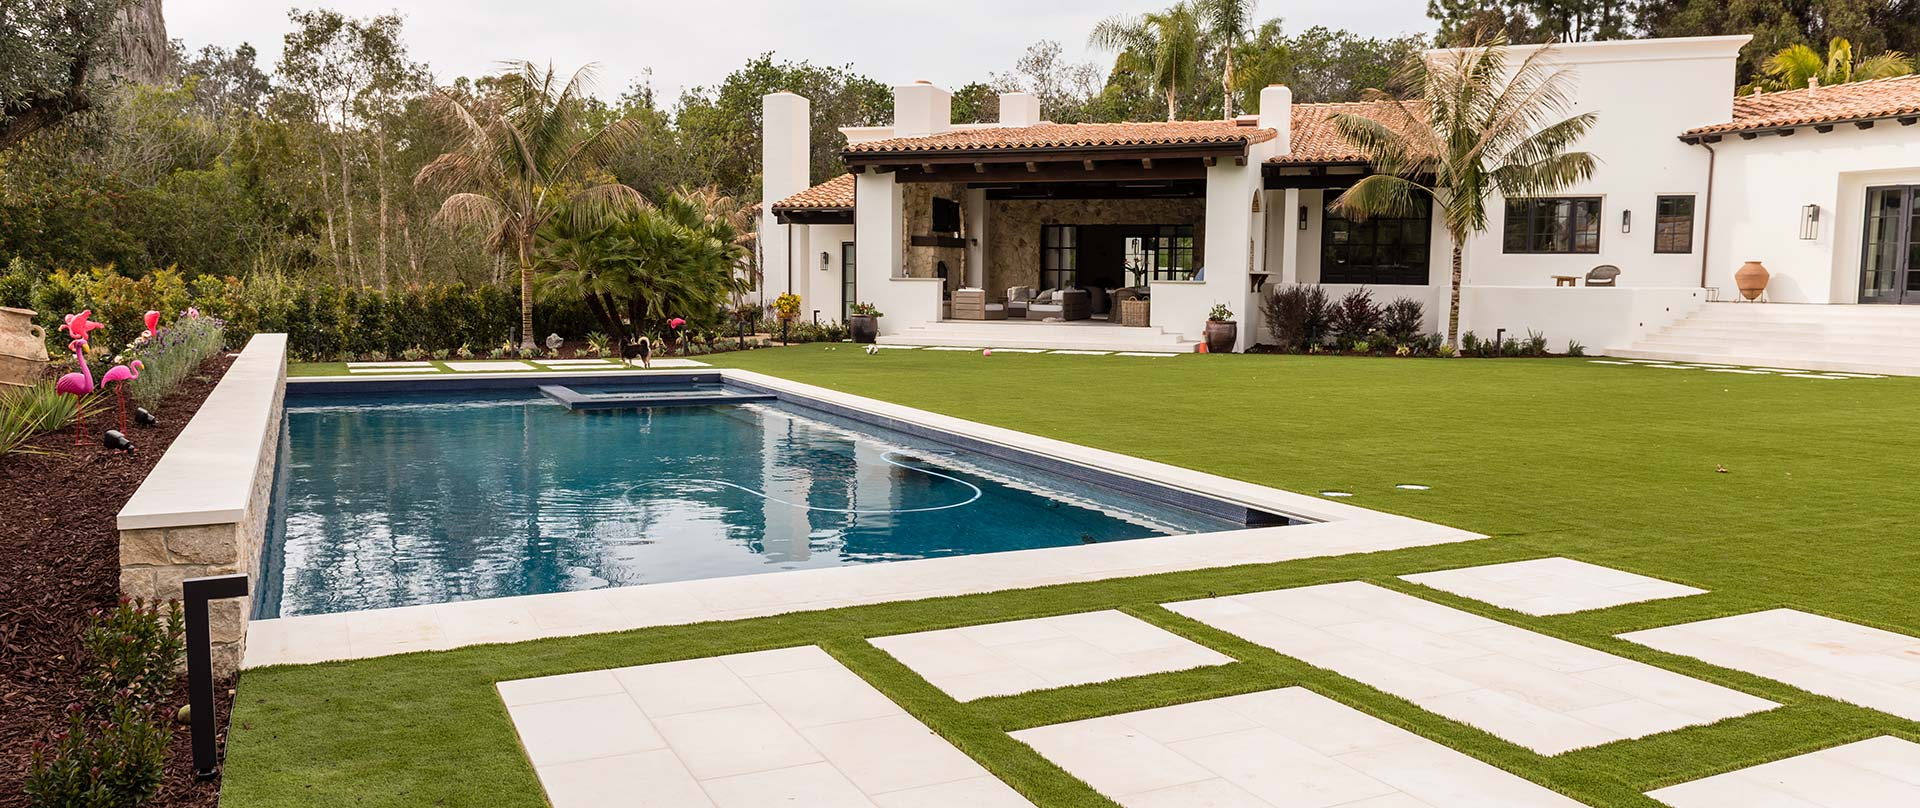 Backyard Makeover with Pool & Spa in Encinitas, CA